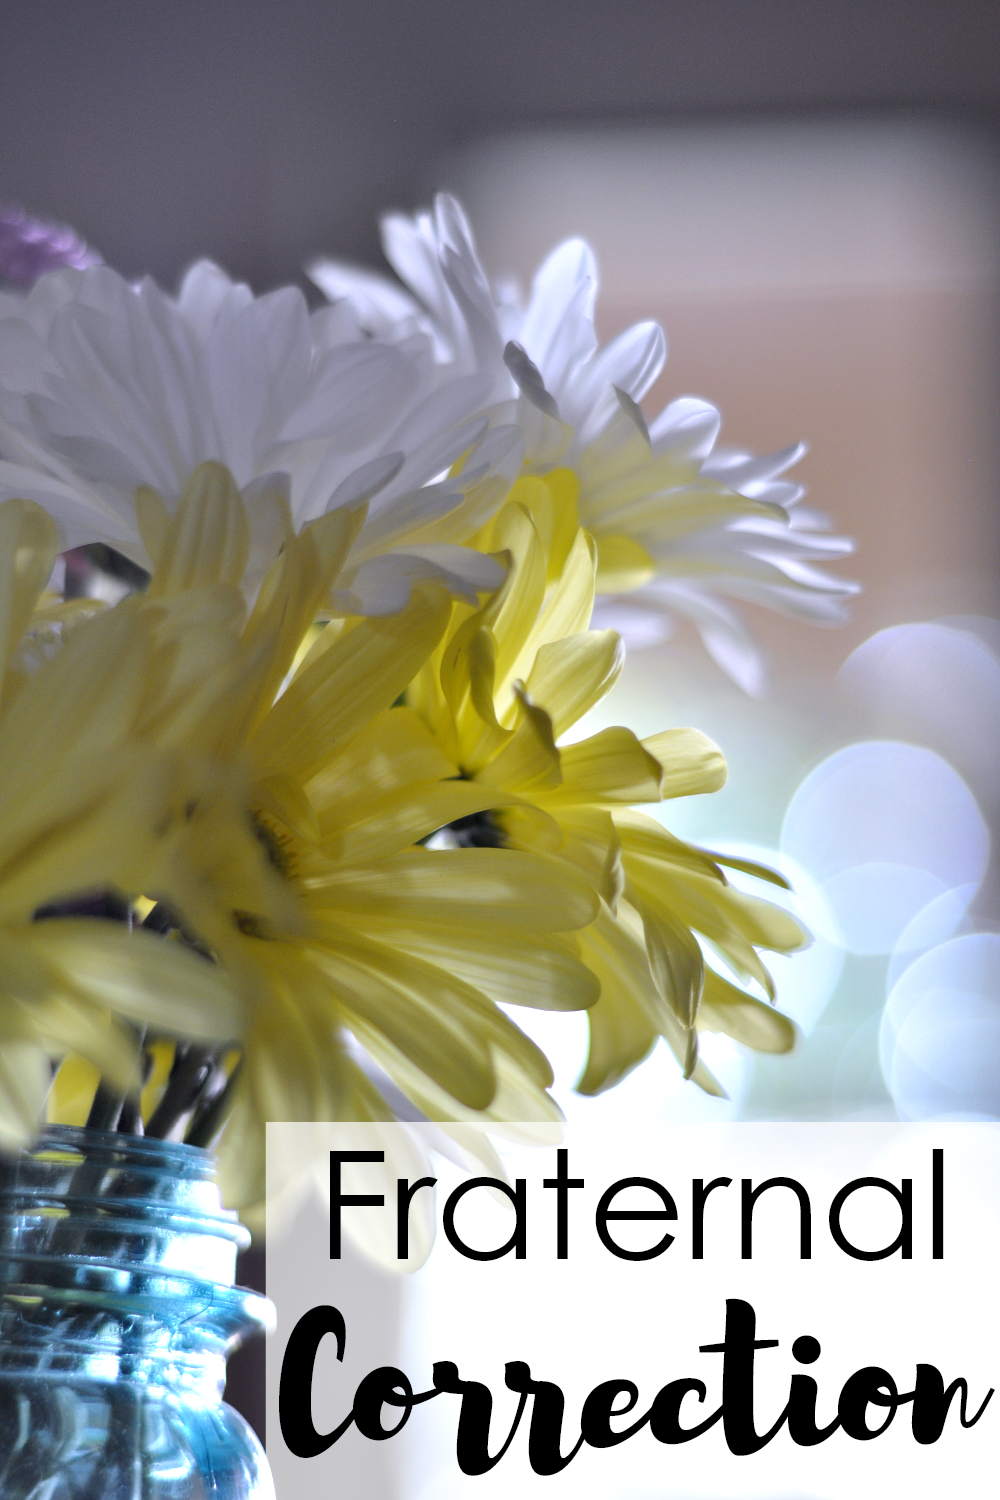 The Littlest Way Fraternal Charity